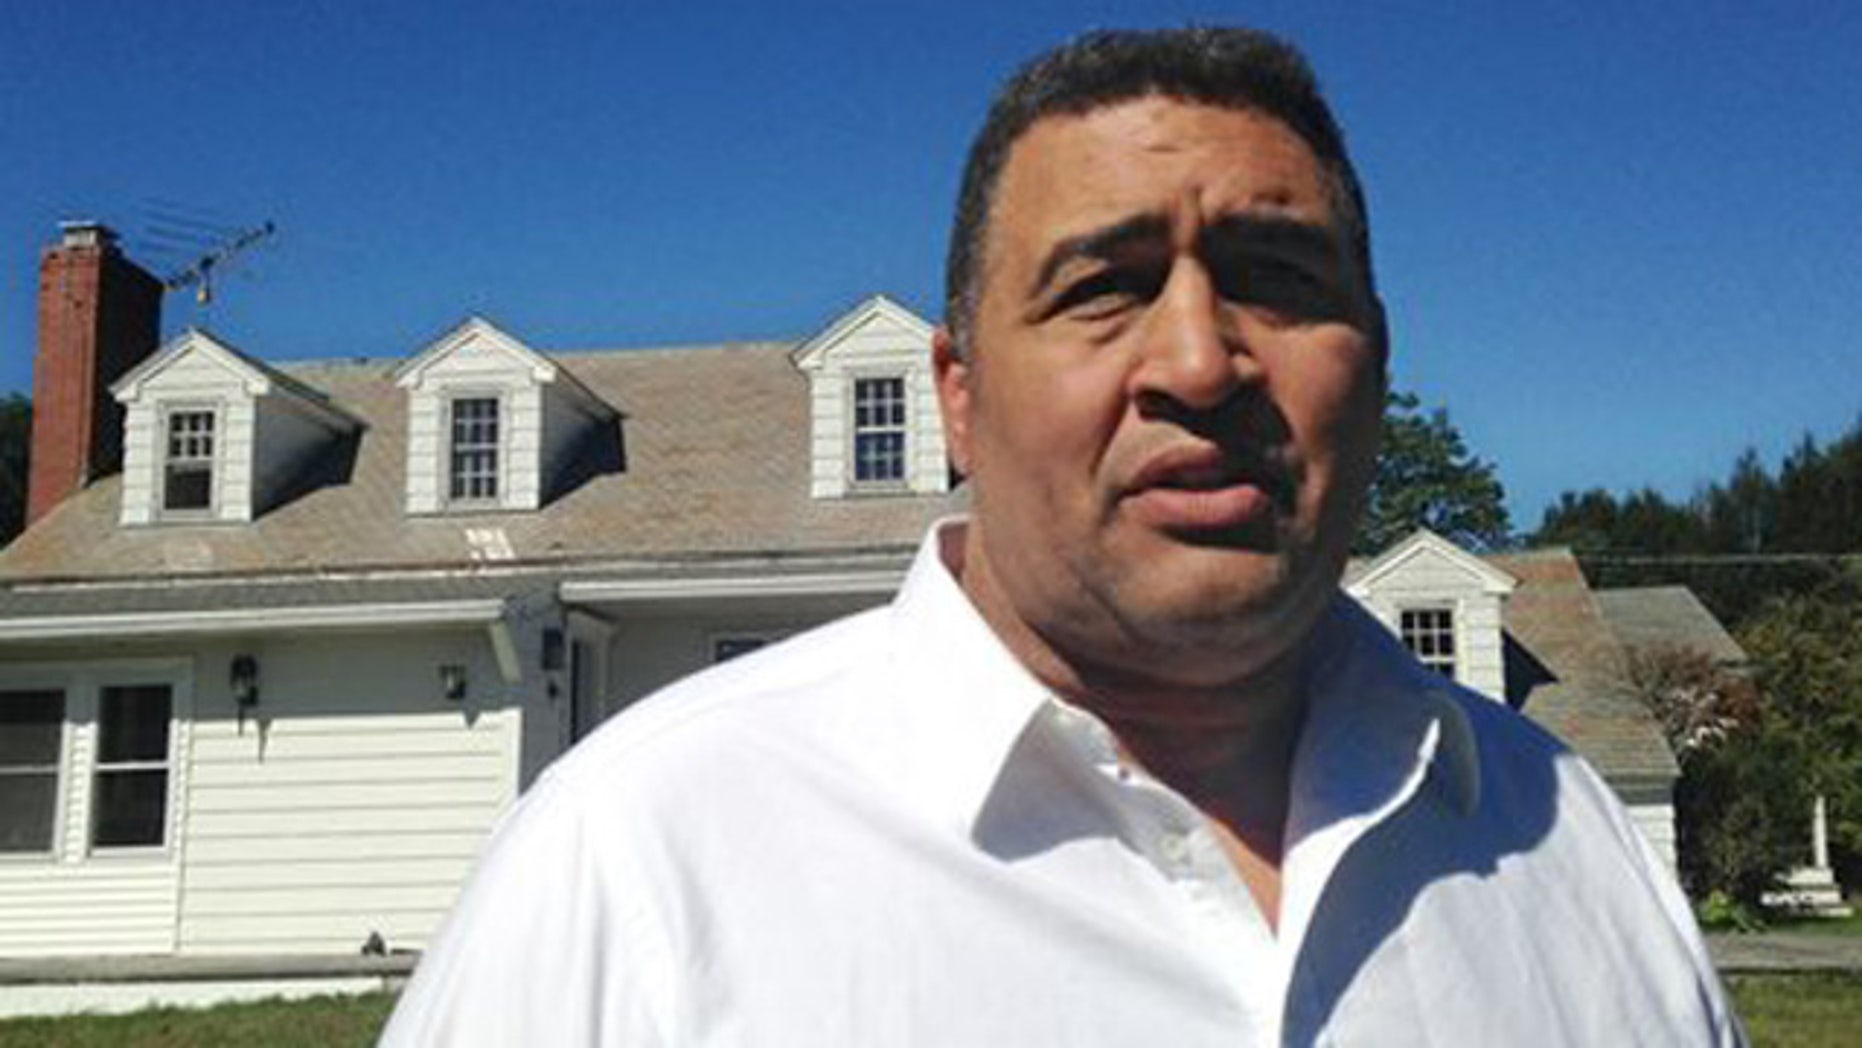 Sept. 18, 2013: Former NFL offensive lineman Brian Holloway stands in front of his rural vacation home.